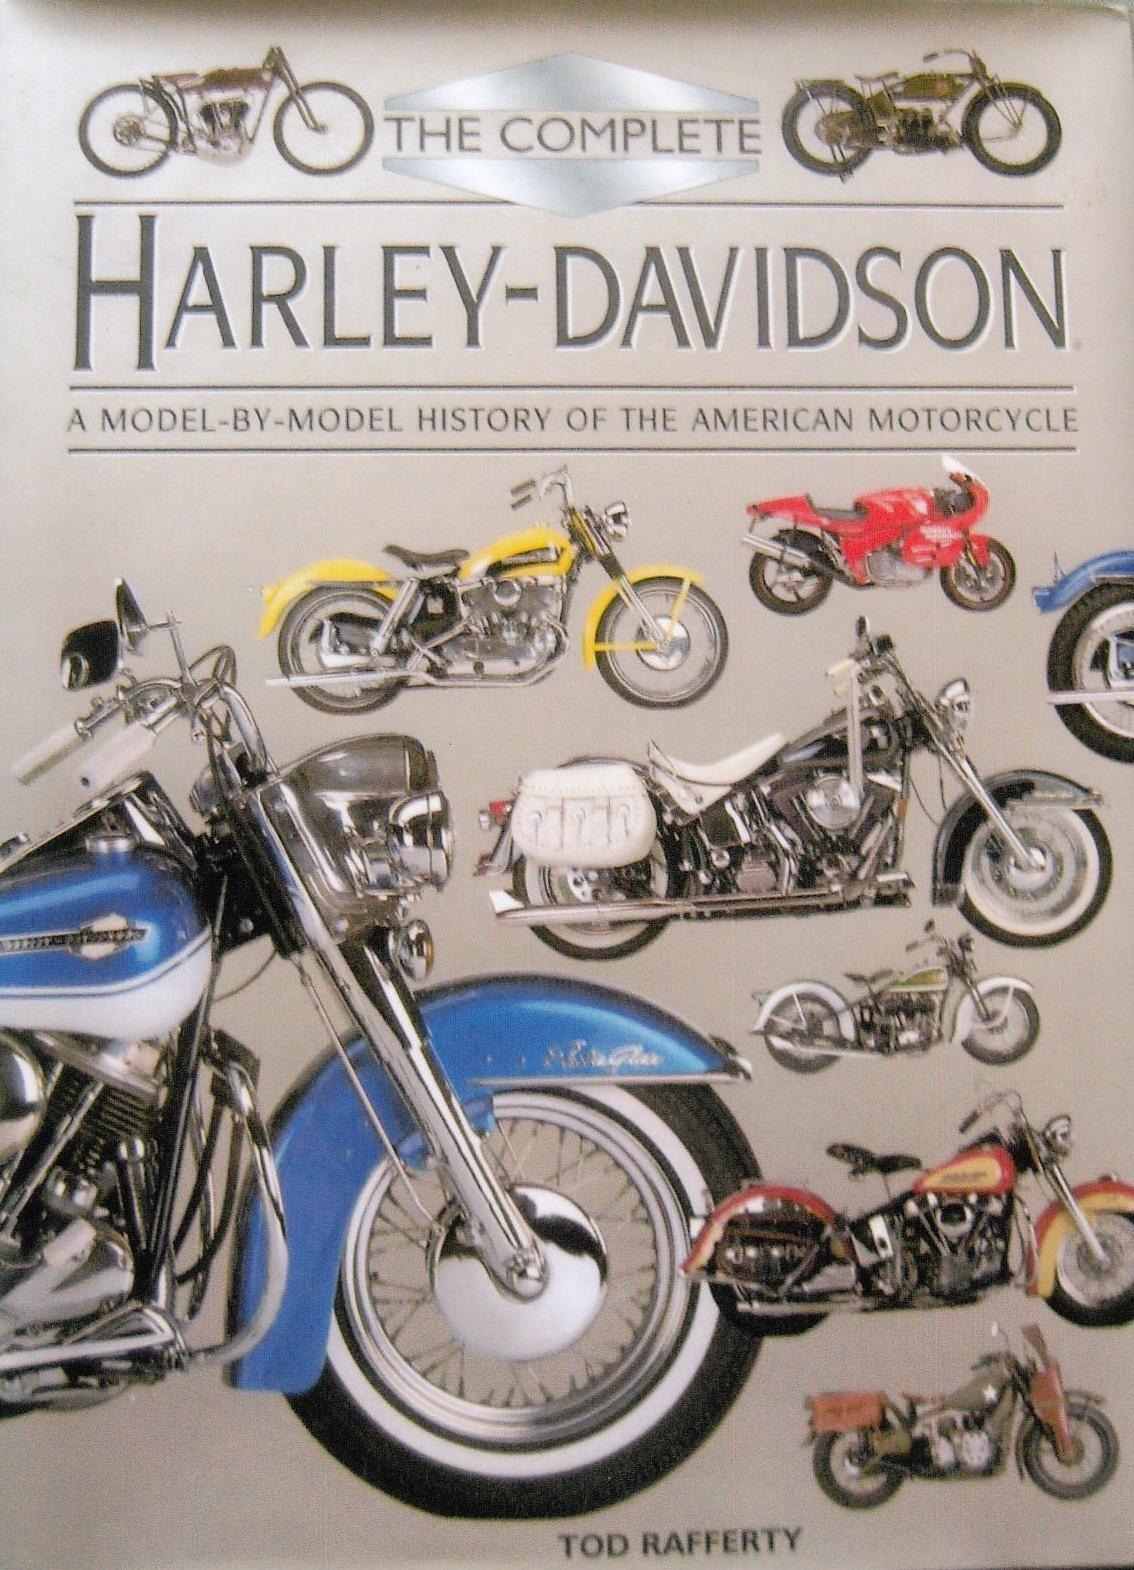 The Complete Harley-Davidson - A Model by Model History